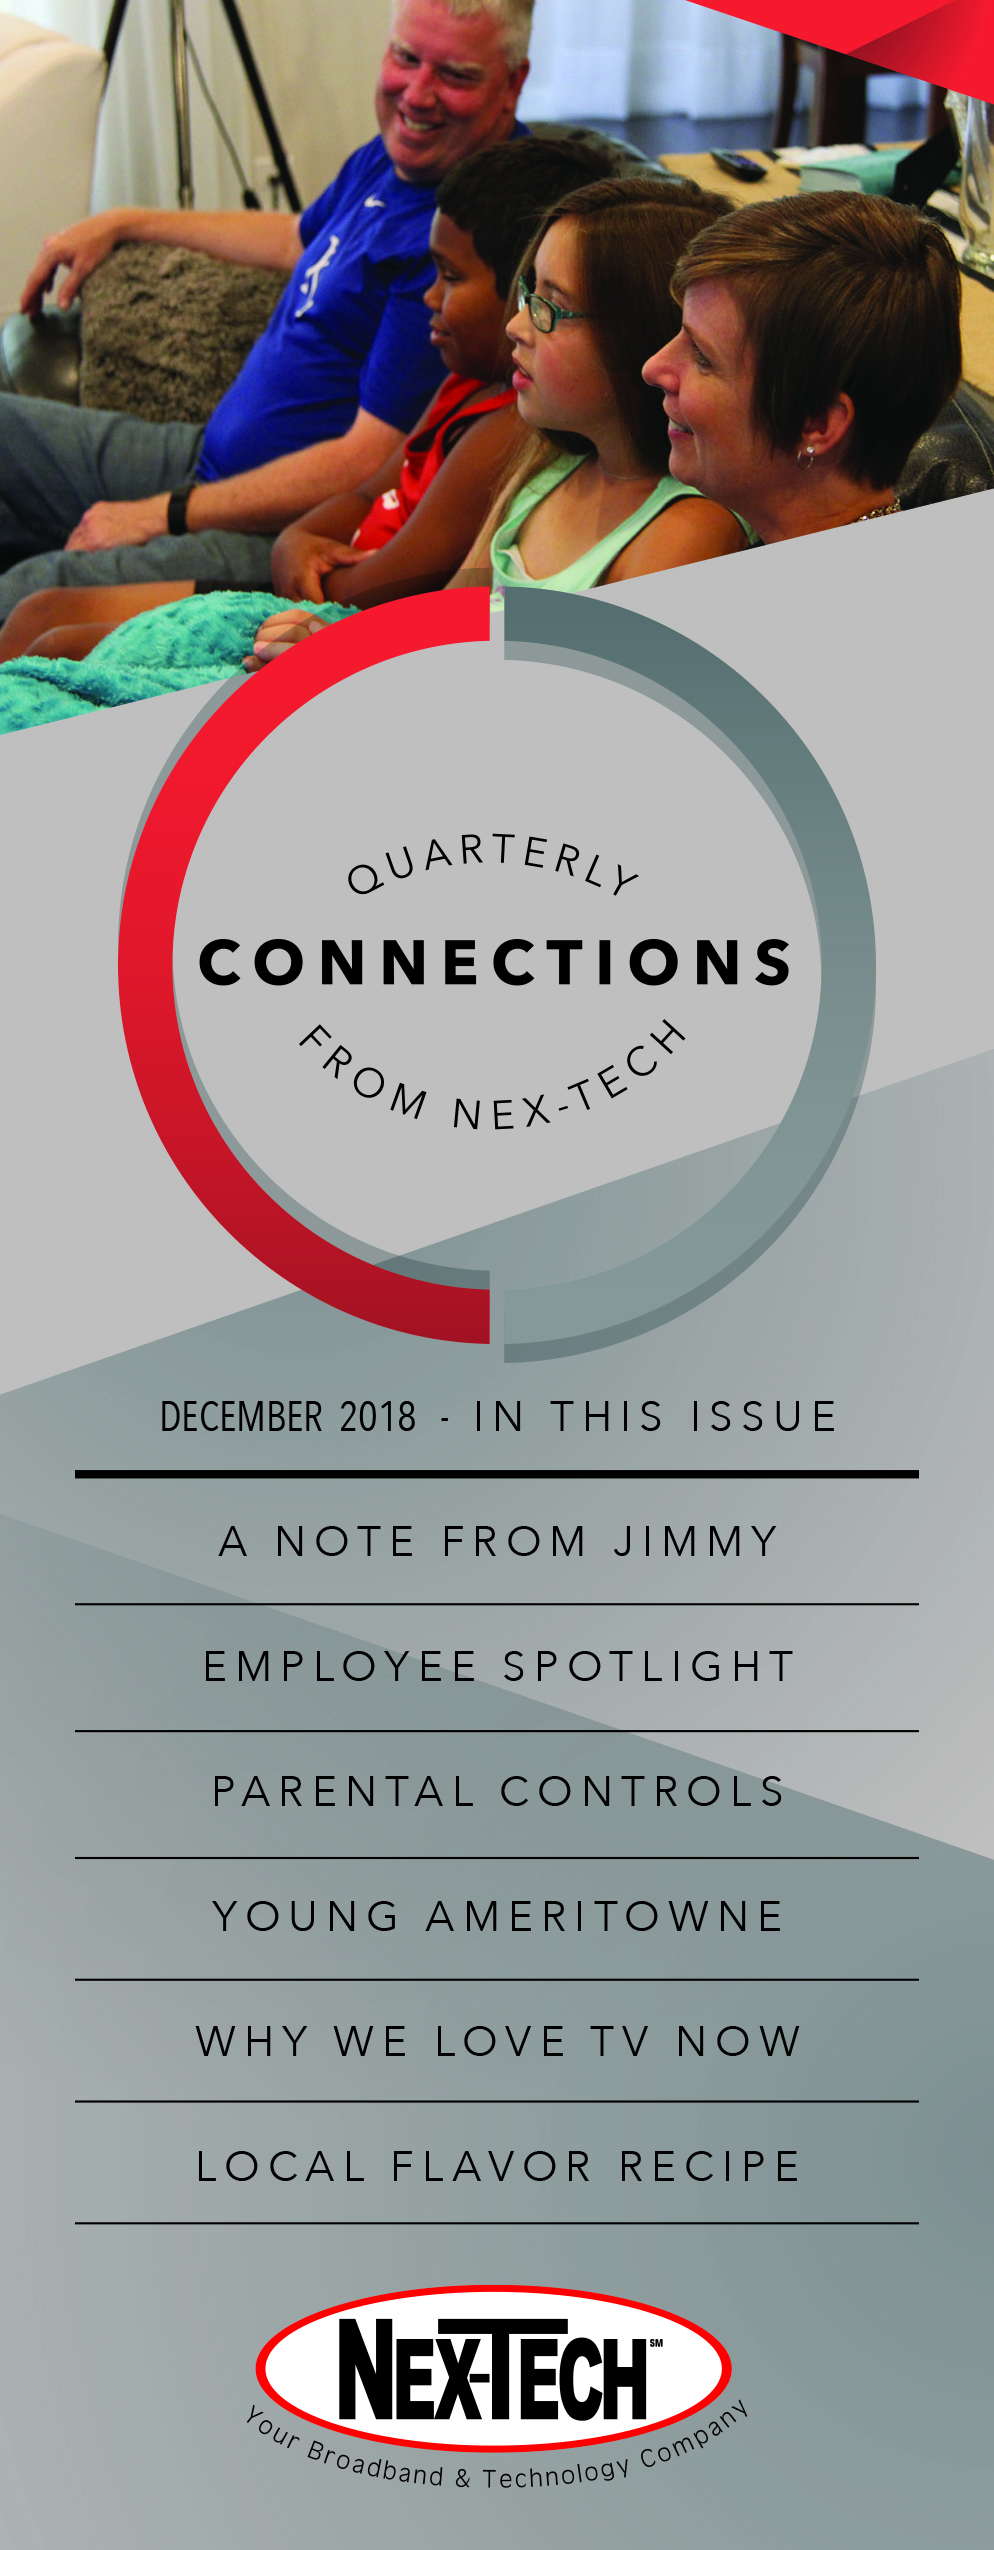 Quarterly Connections